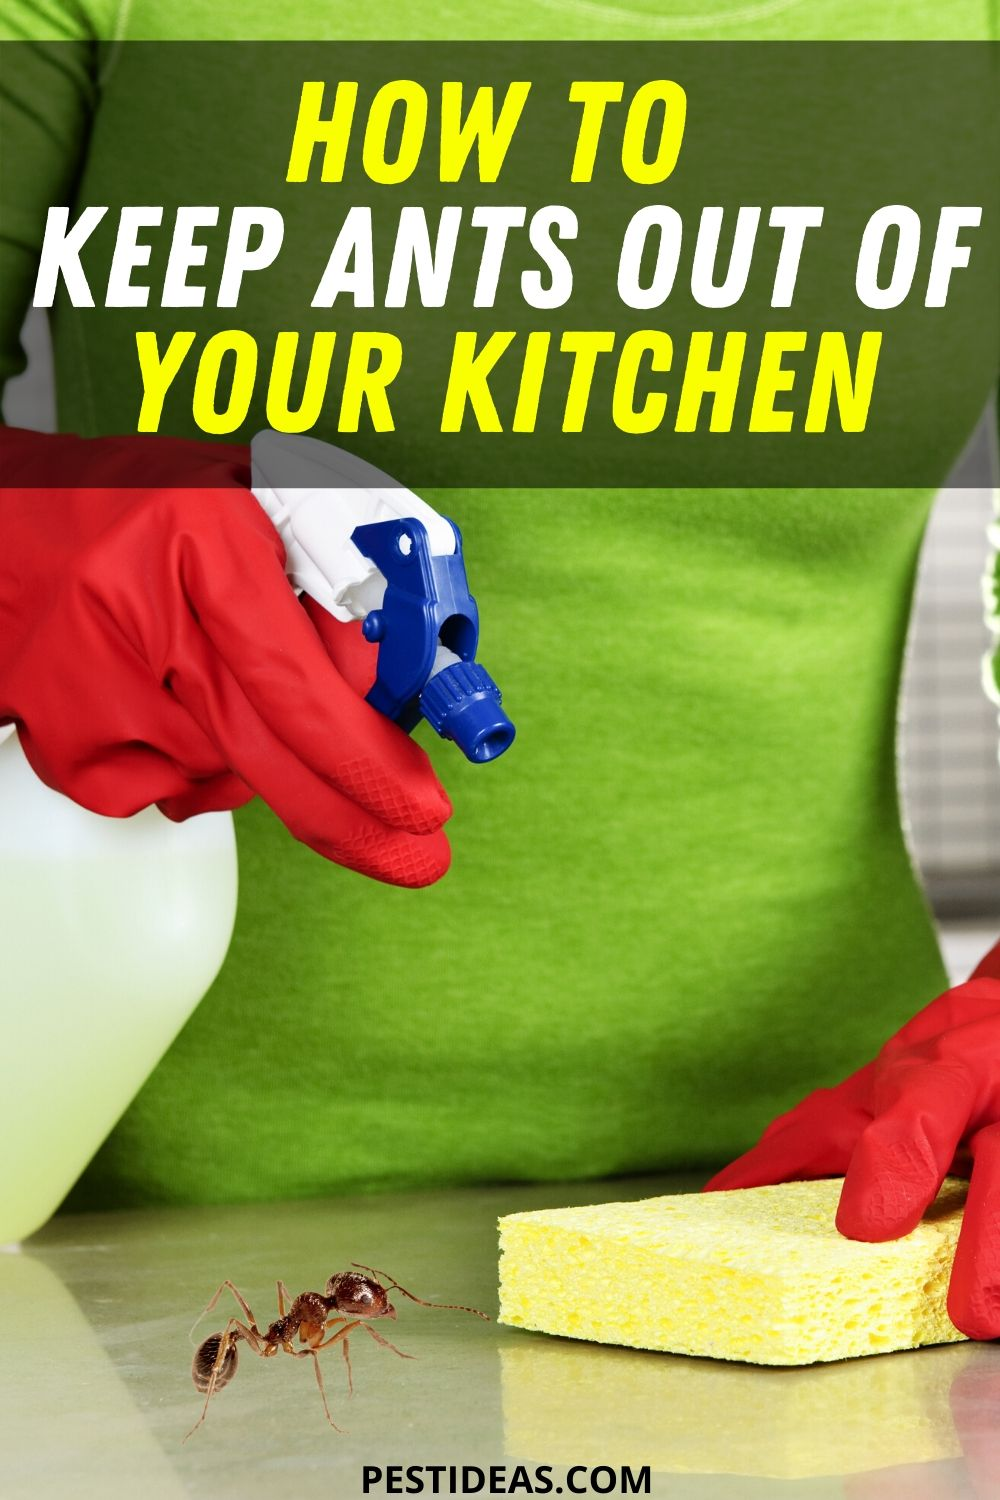 How to Keep Ants out of Your Kitchen